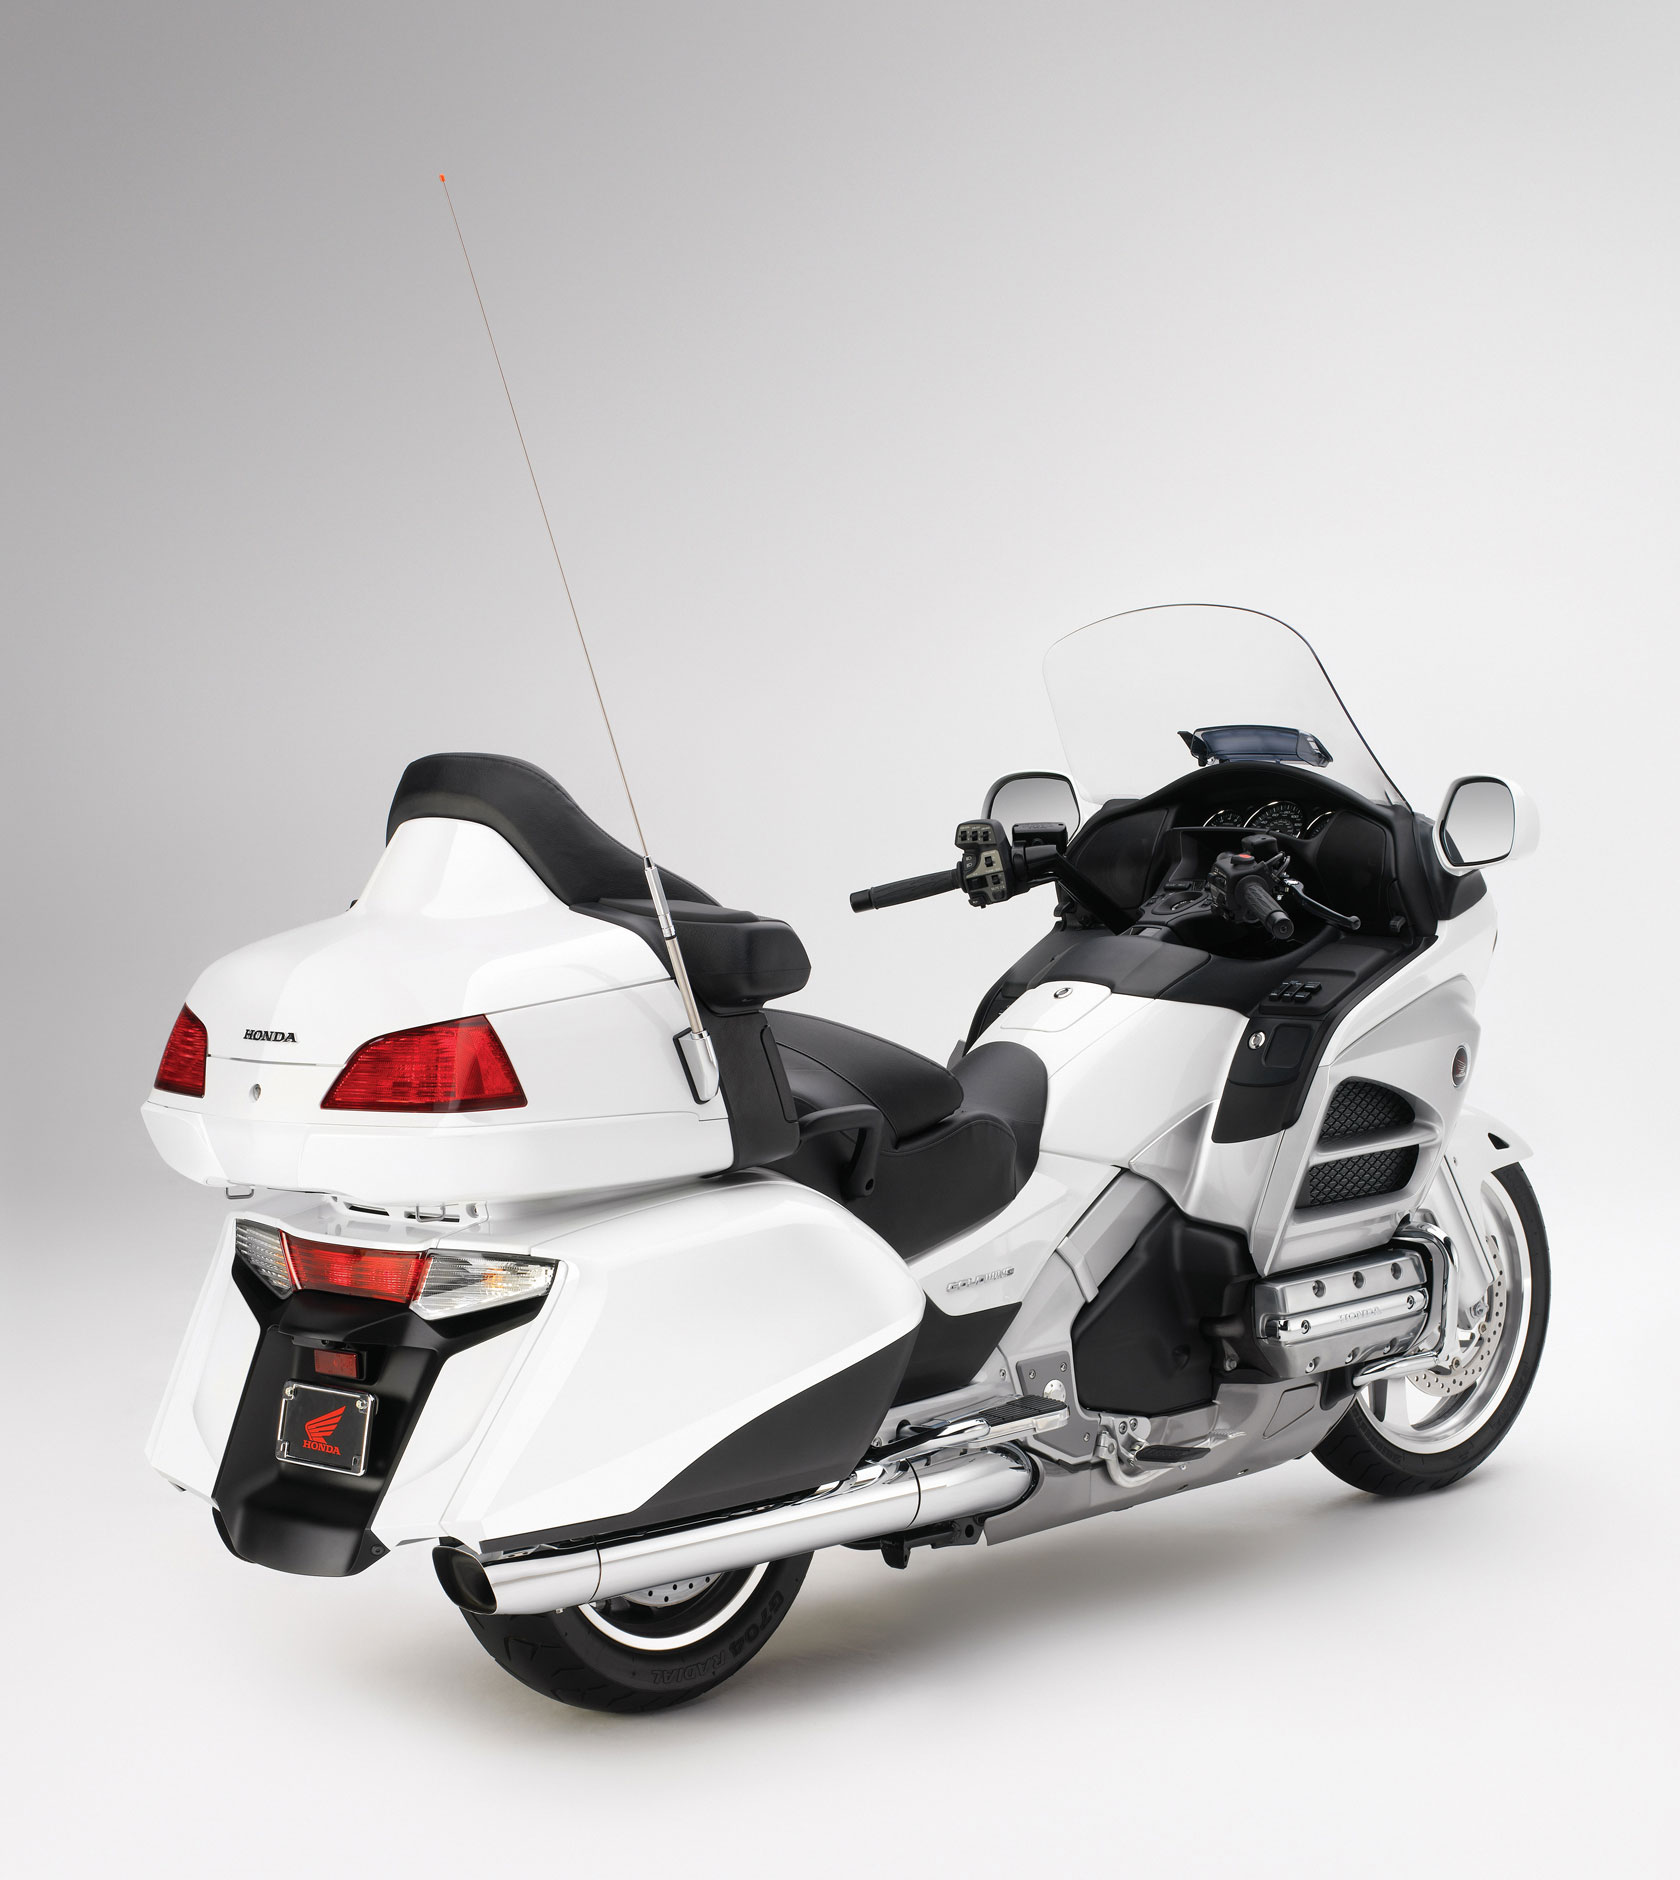 Honda GL 1800 Gold Wing 2013 images #83167